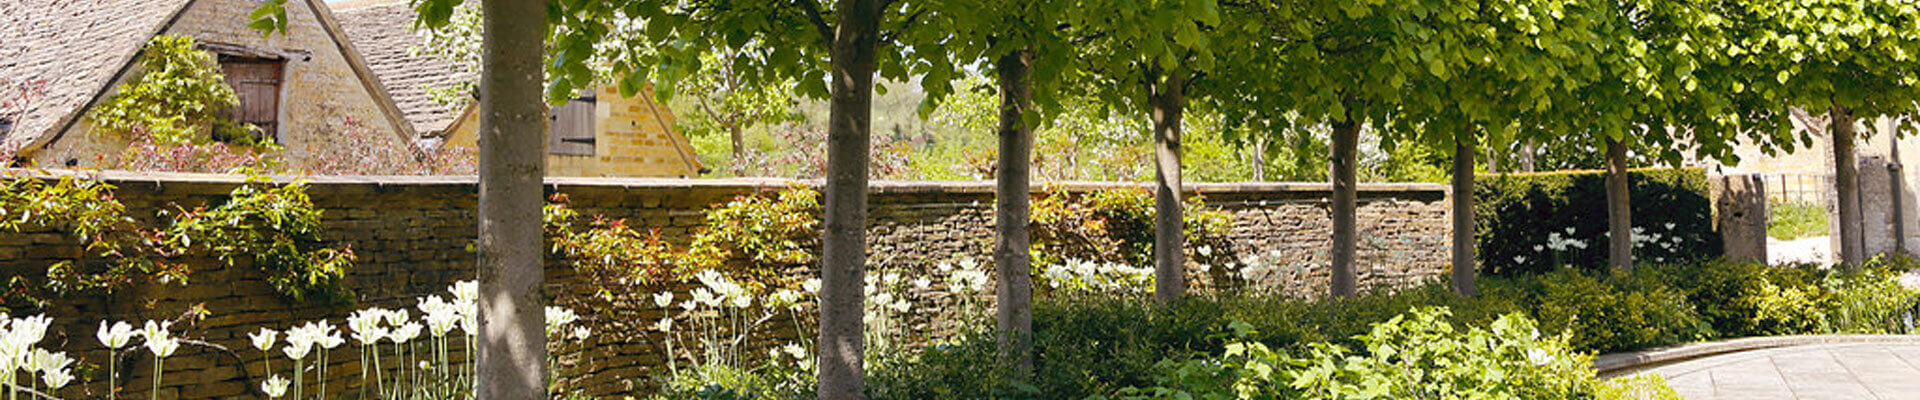 Photo of the gardens at Temple Guiting Barn